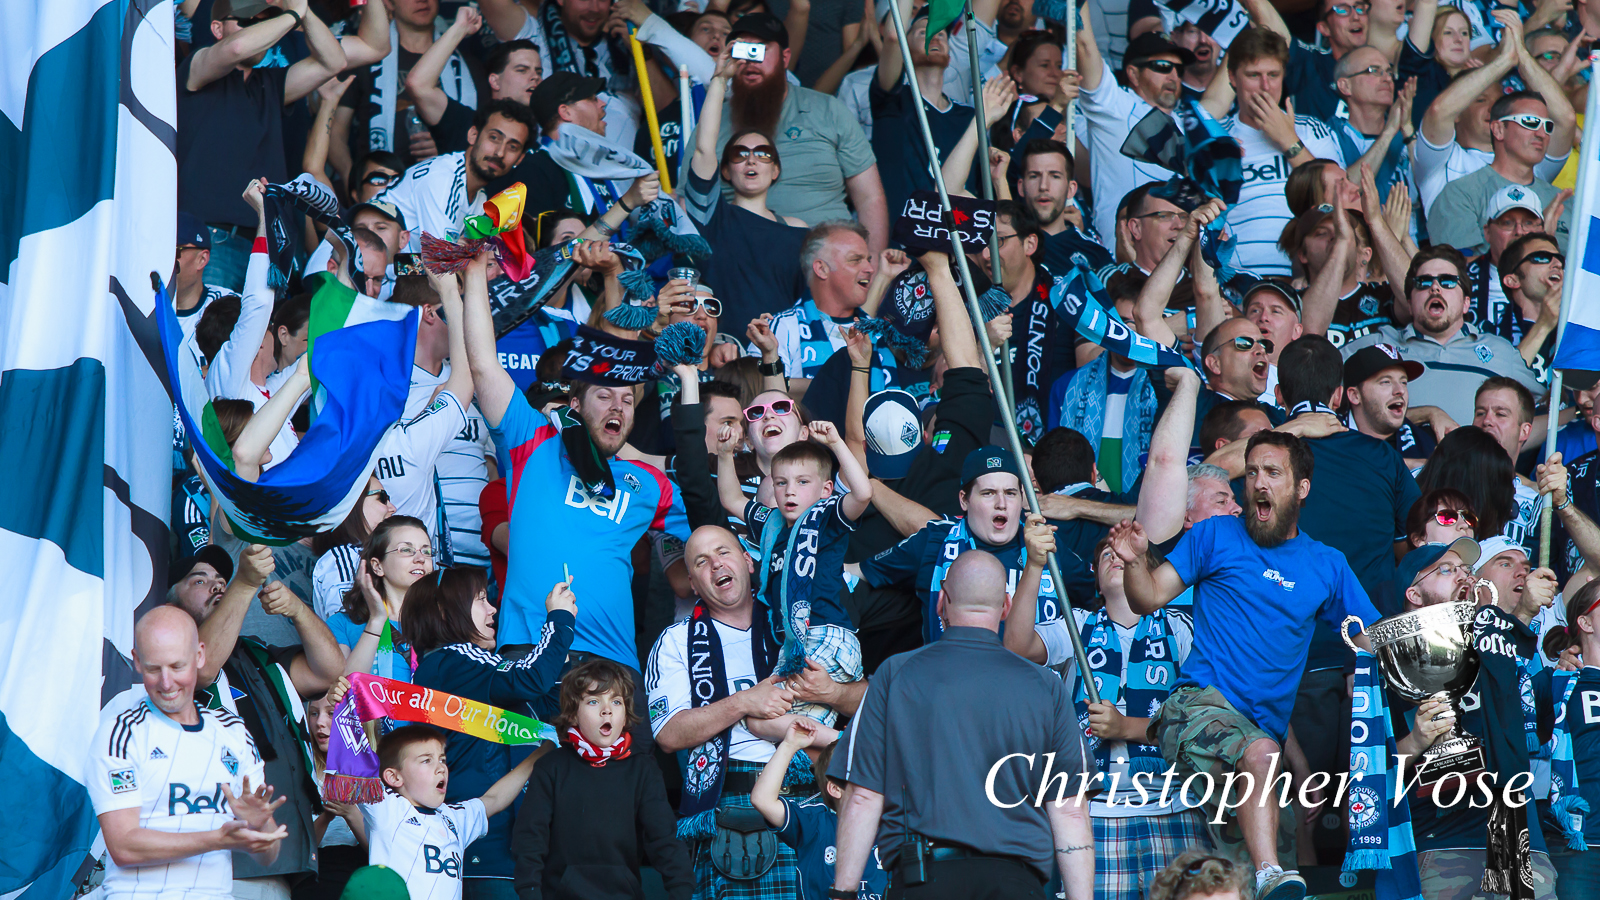 2014-06-01 Curva Collective, Rain City Brigade, and Vancouver Southsiders (Hurtado).jpg